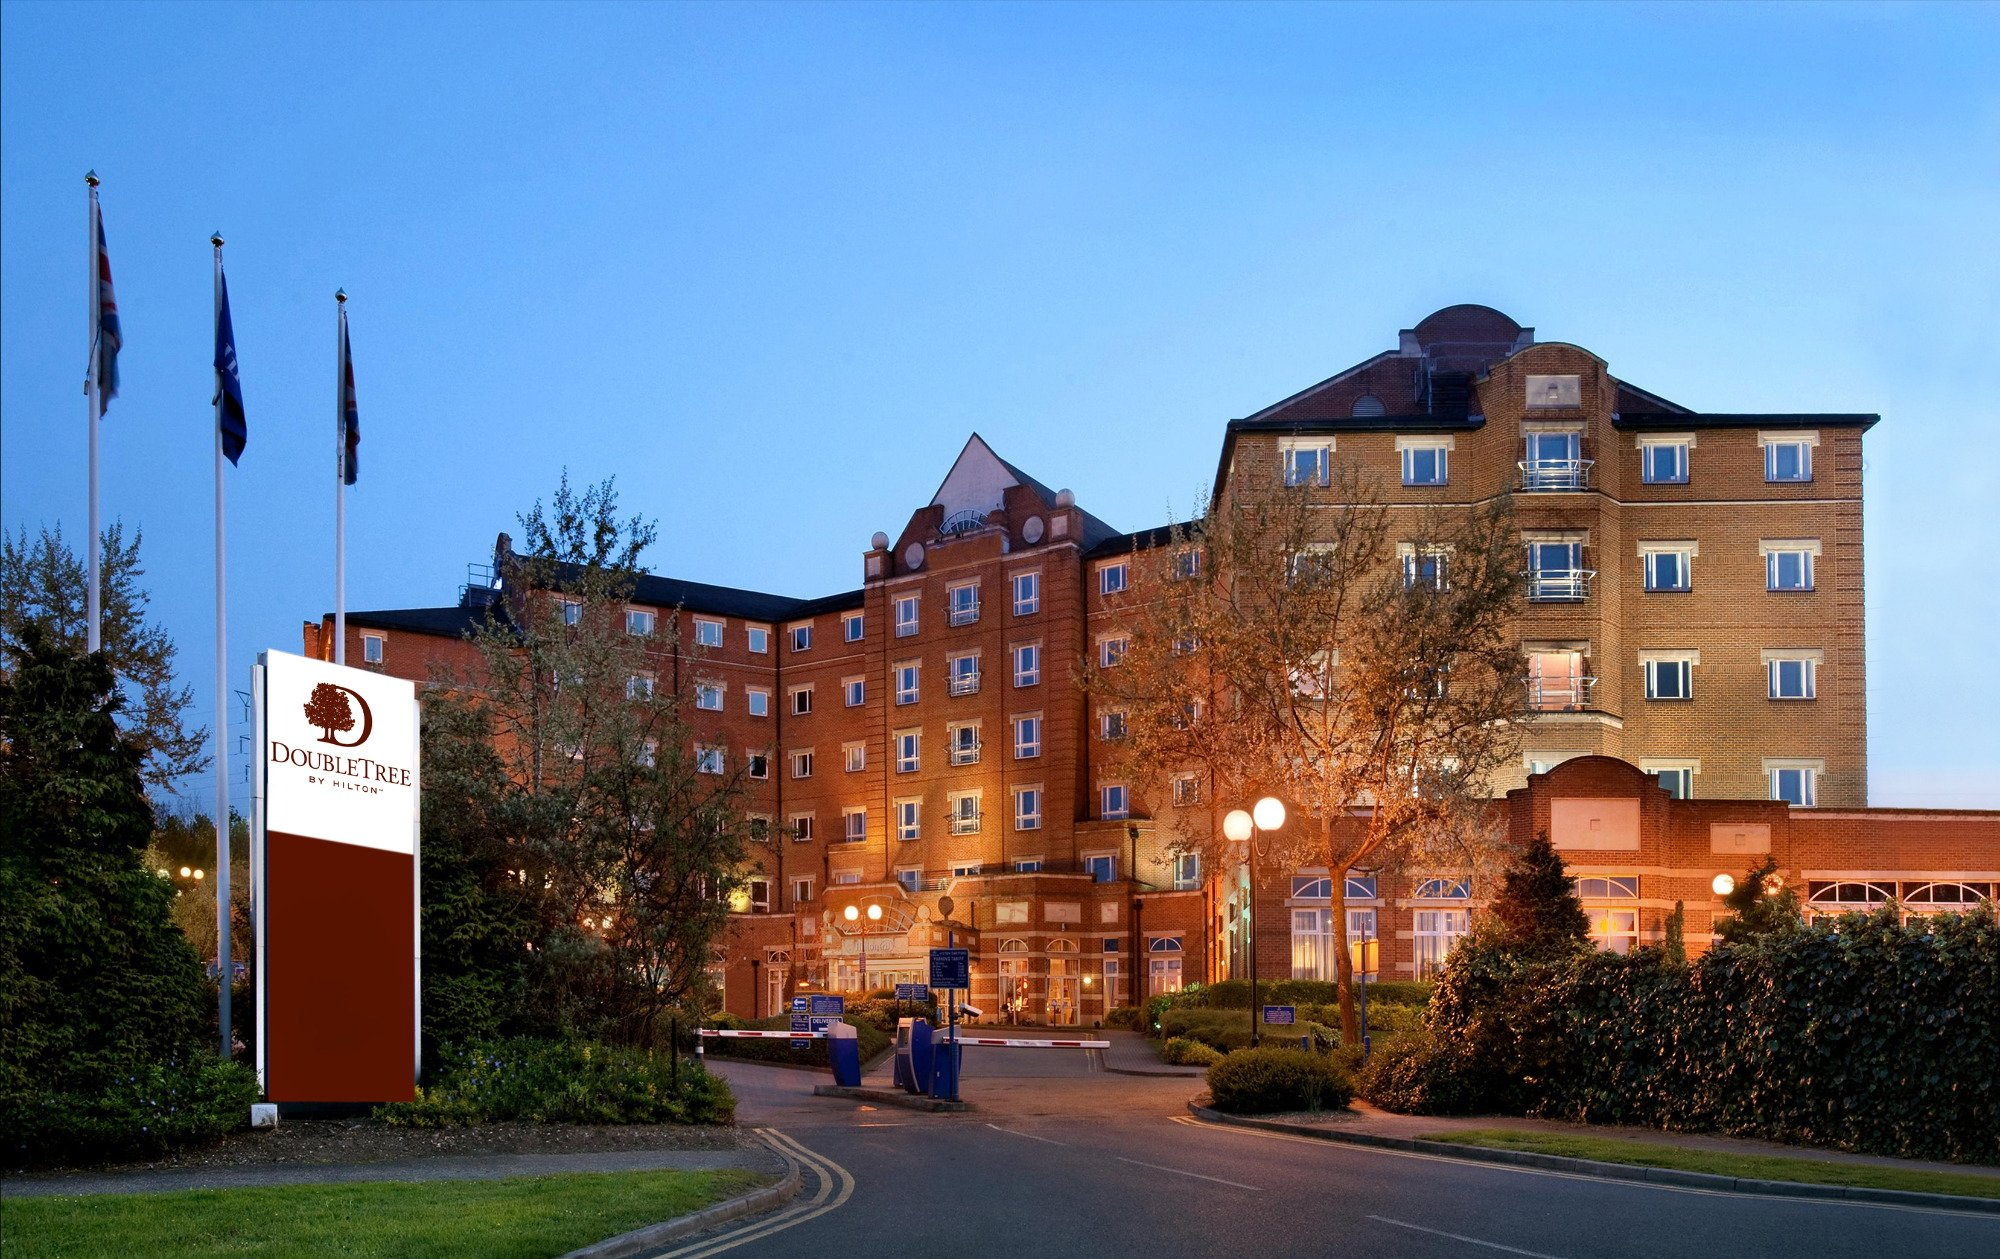 The DoubleTree by Hilton, Dartford Magician